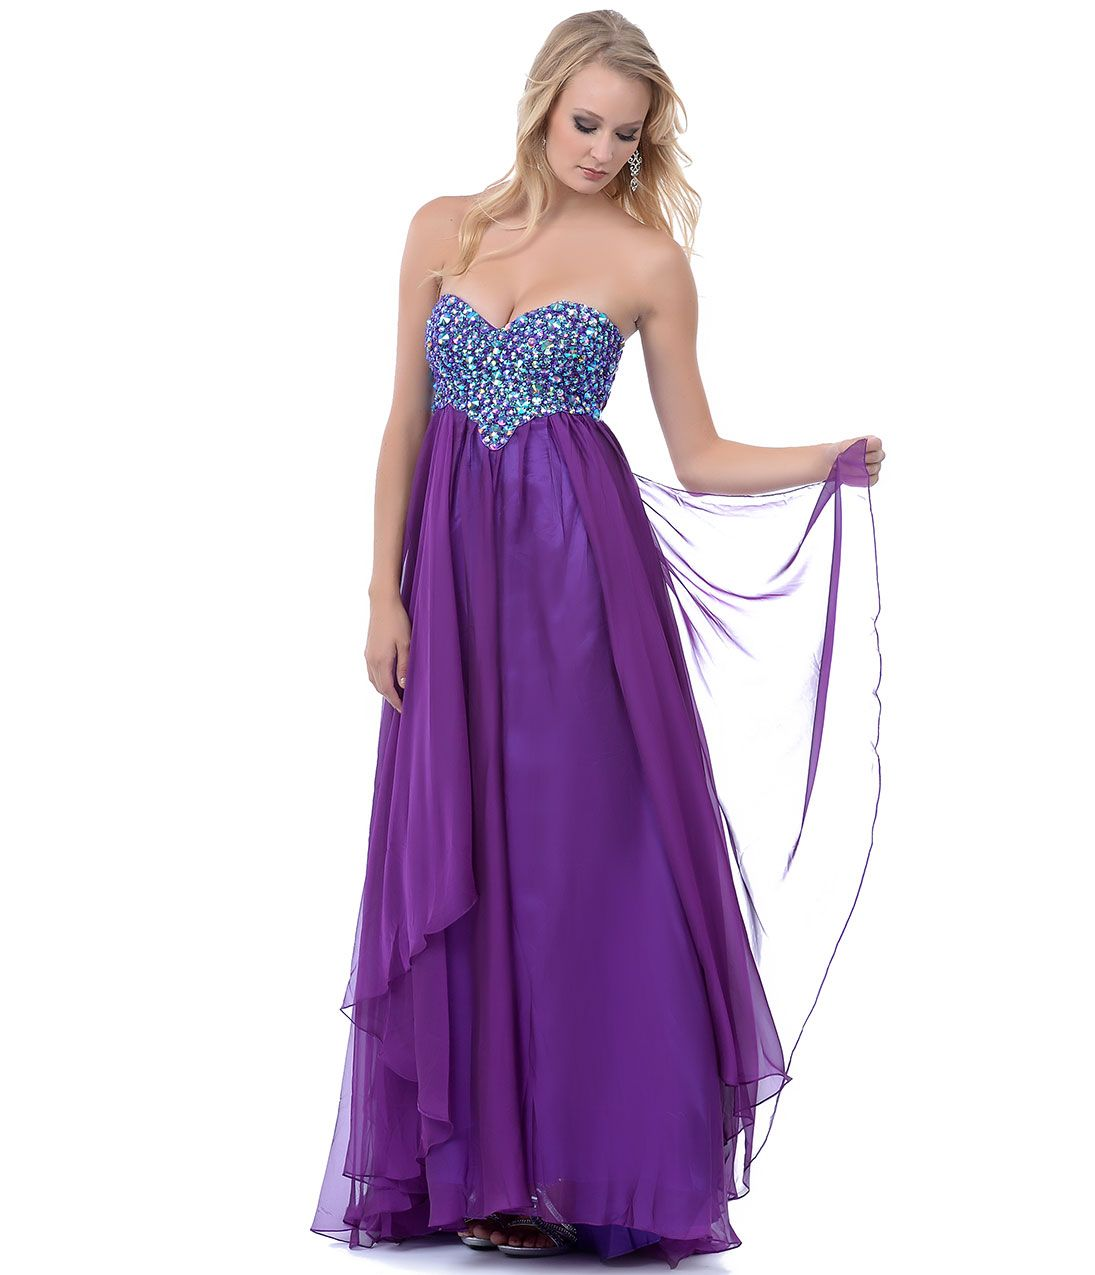 prom dresses 2014 | Purple Prom Dresses 2014 Picture in FASHION ...